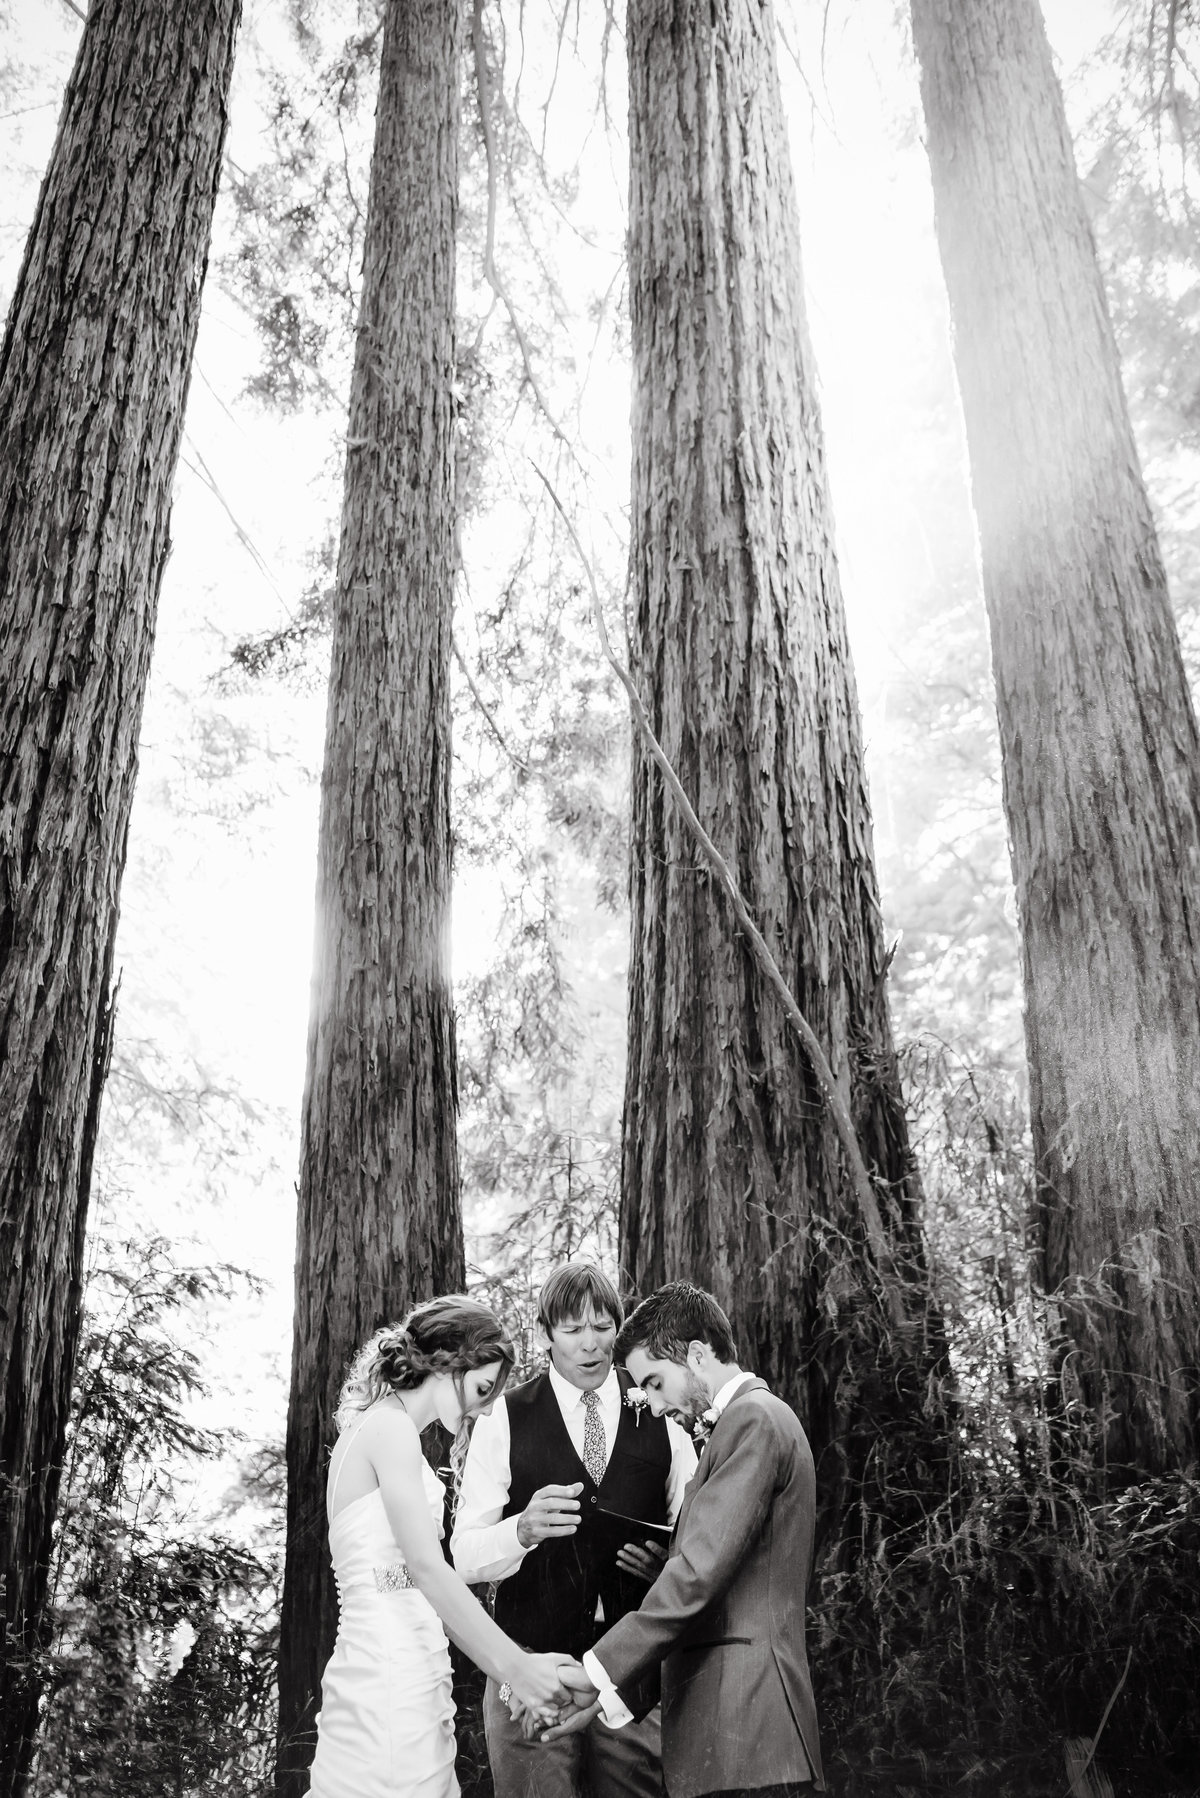 Wedding Ceremony in Redwood Tree during prayer